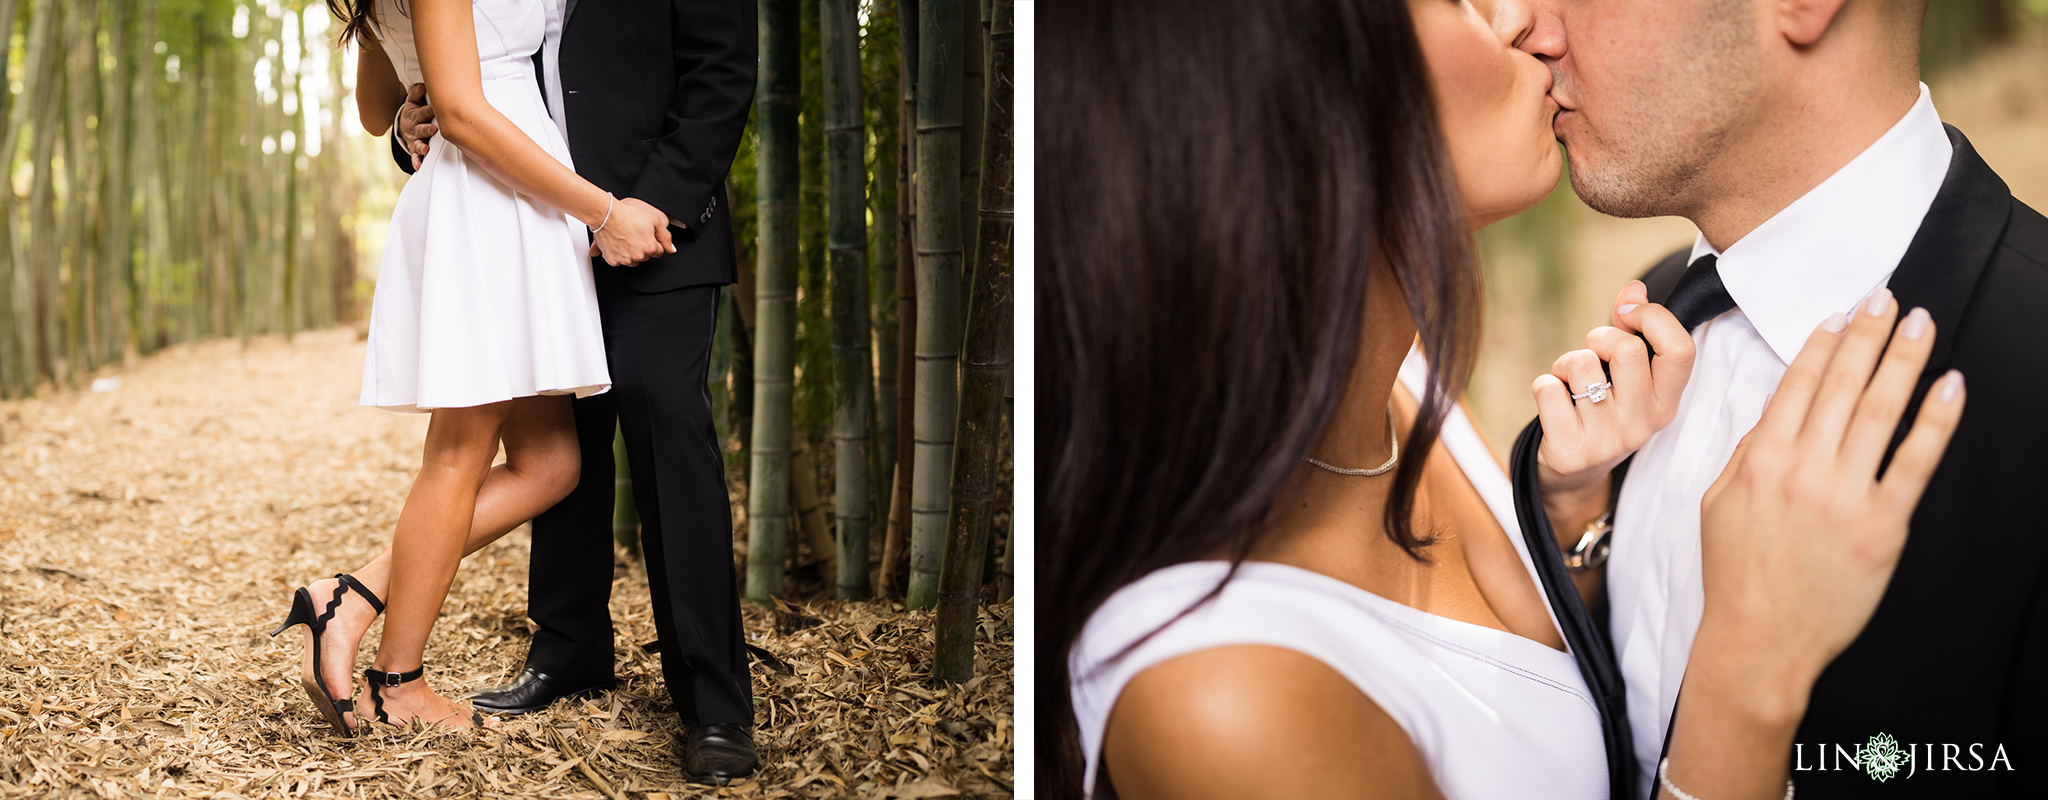 03-Los-angeles-arboretum-engagement-photography